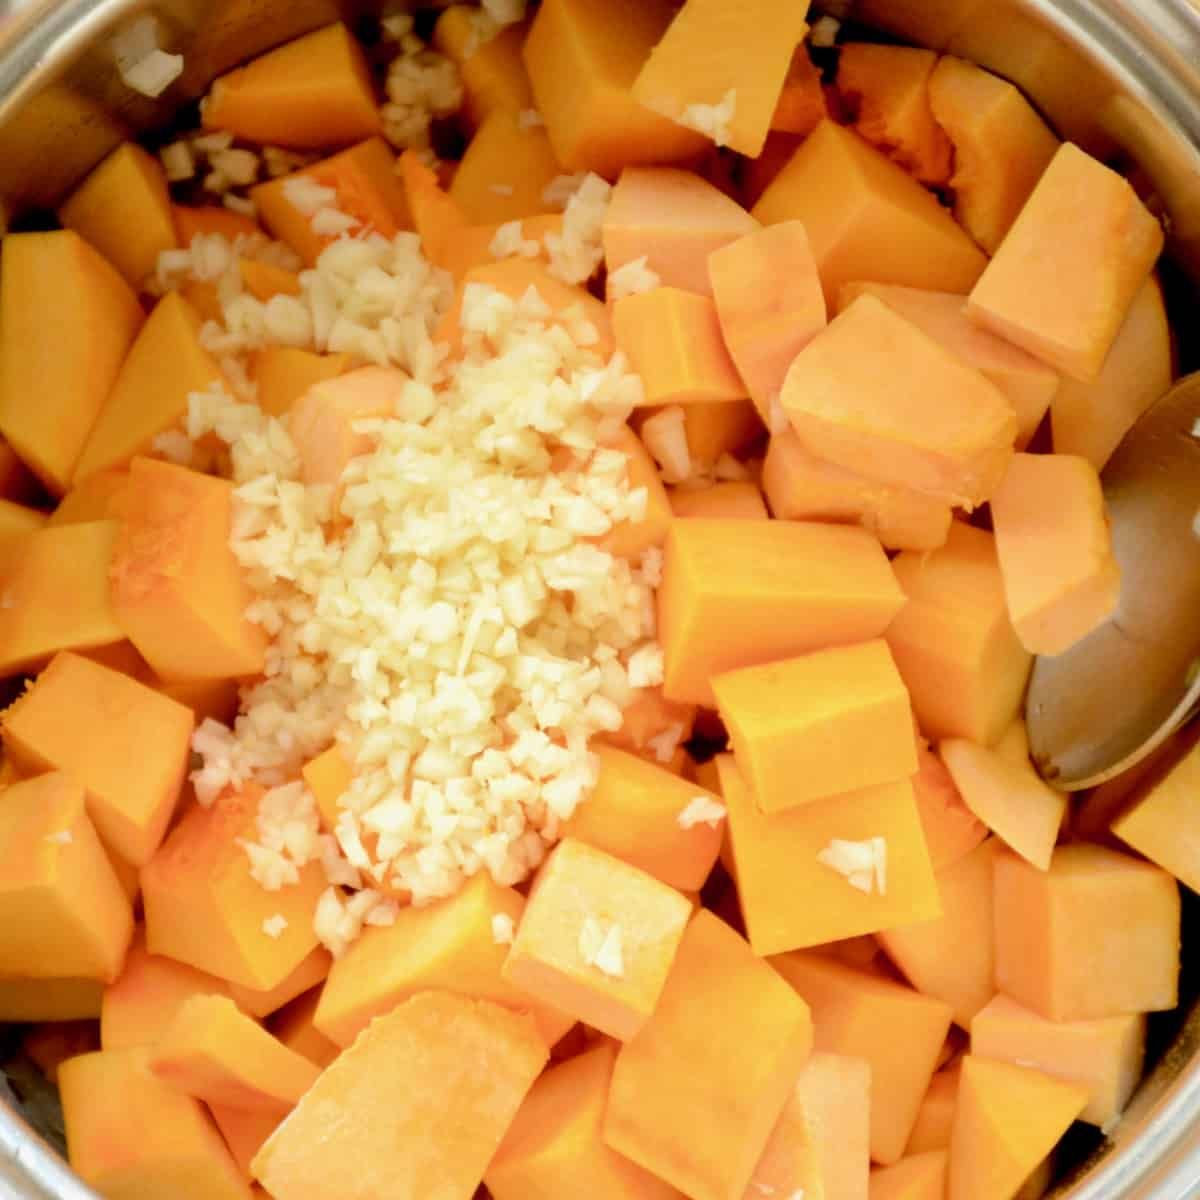 Finely chopped garlic on top of pumpkin cubes in a pan.